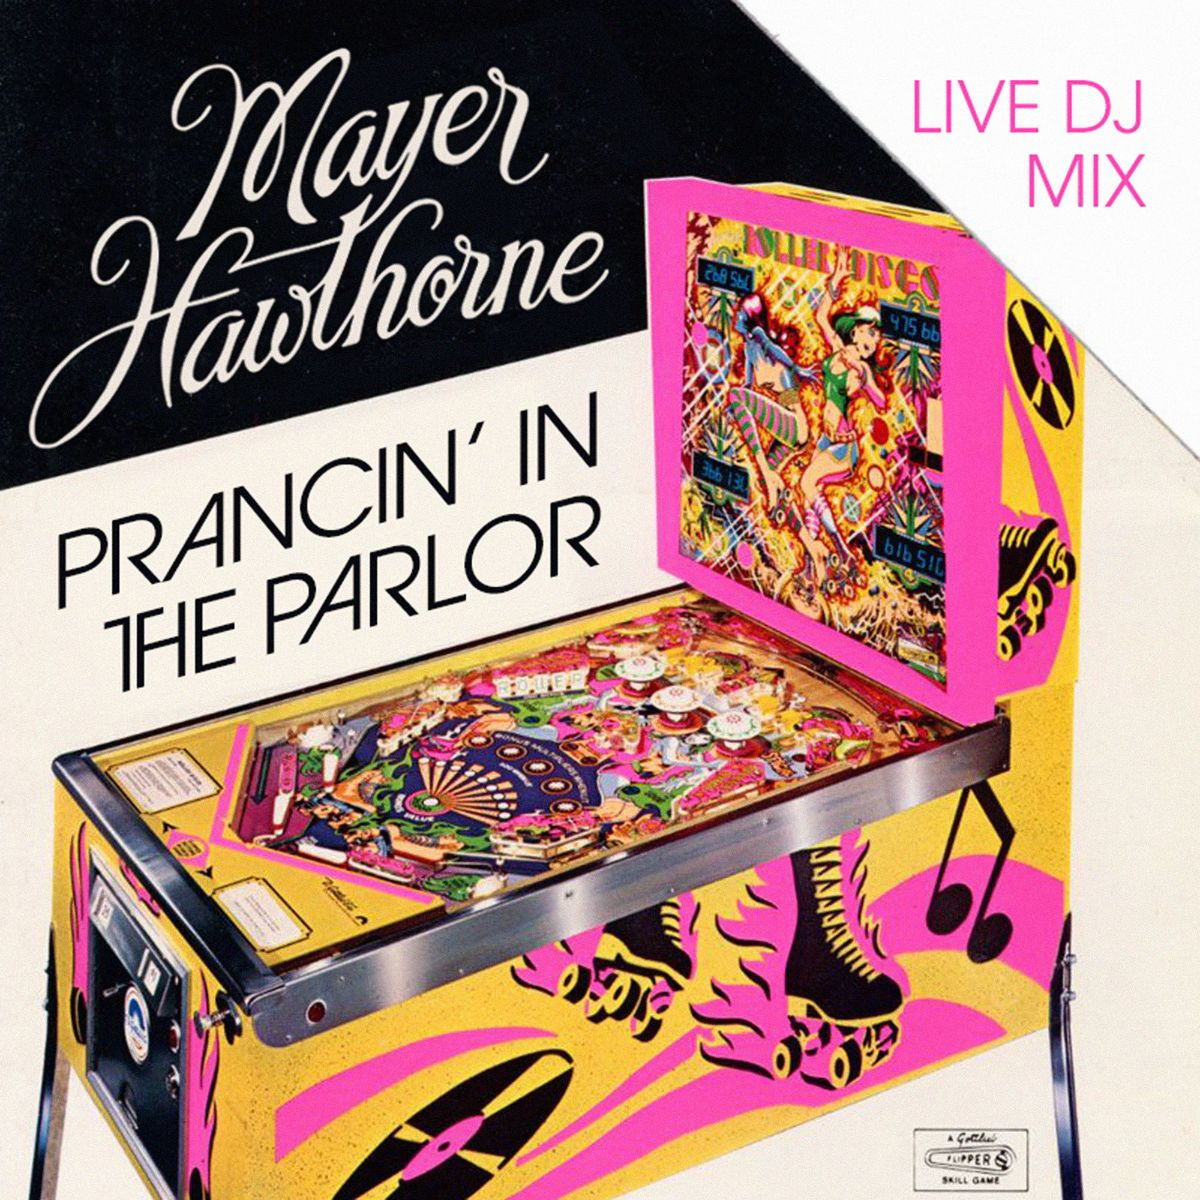 Prancin' in the Parlor | Ein Live DJ Mix on Mayer Hawthorne